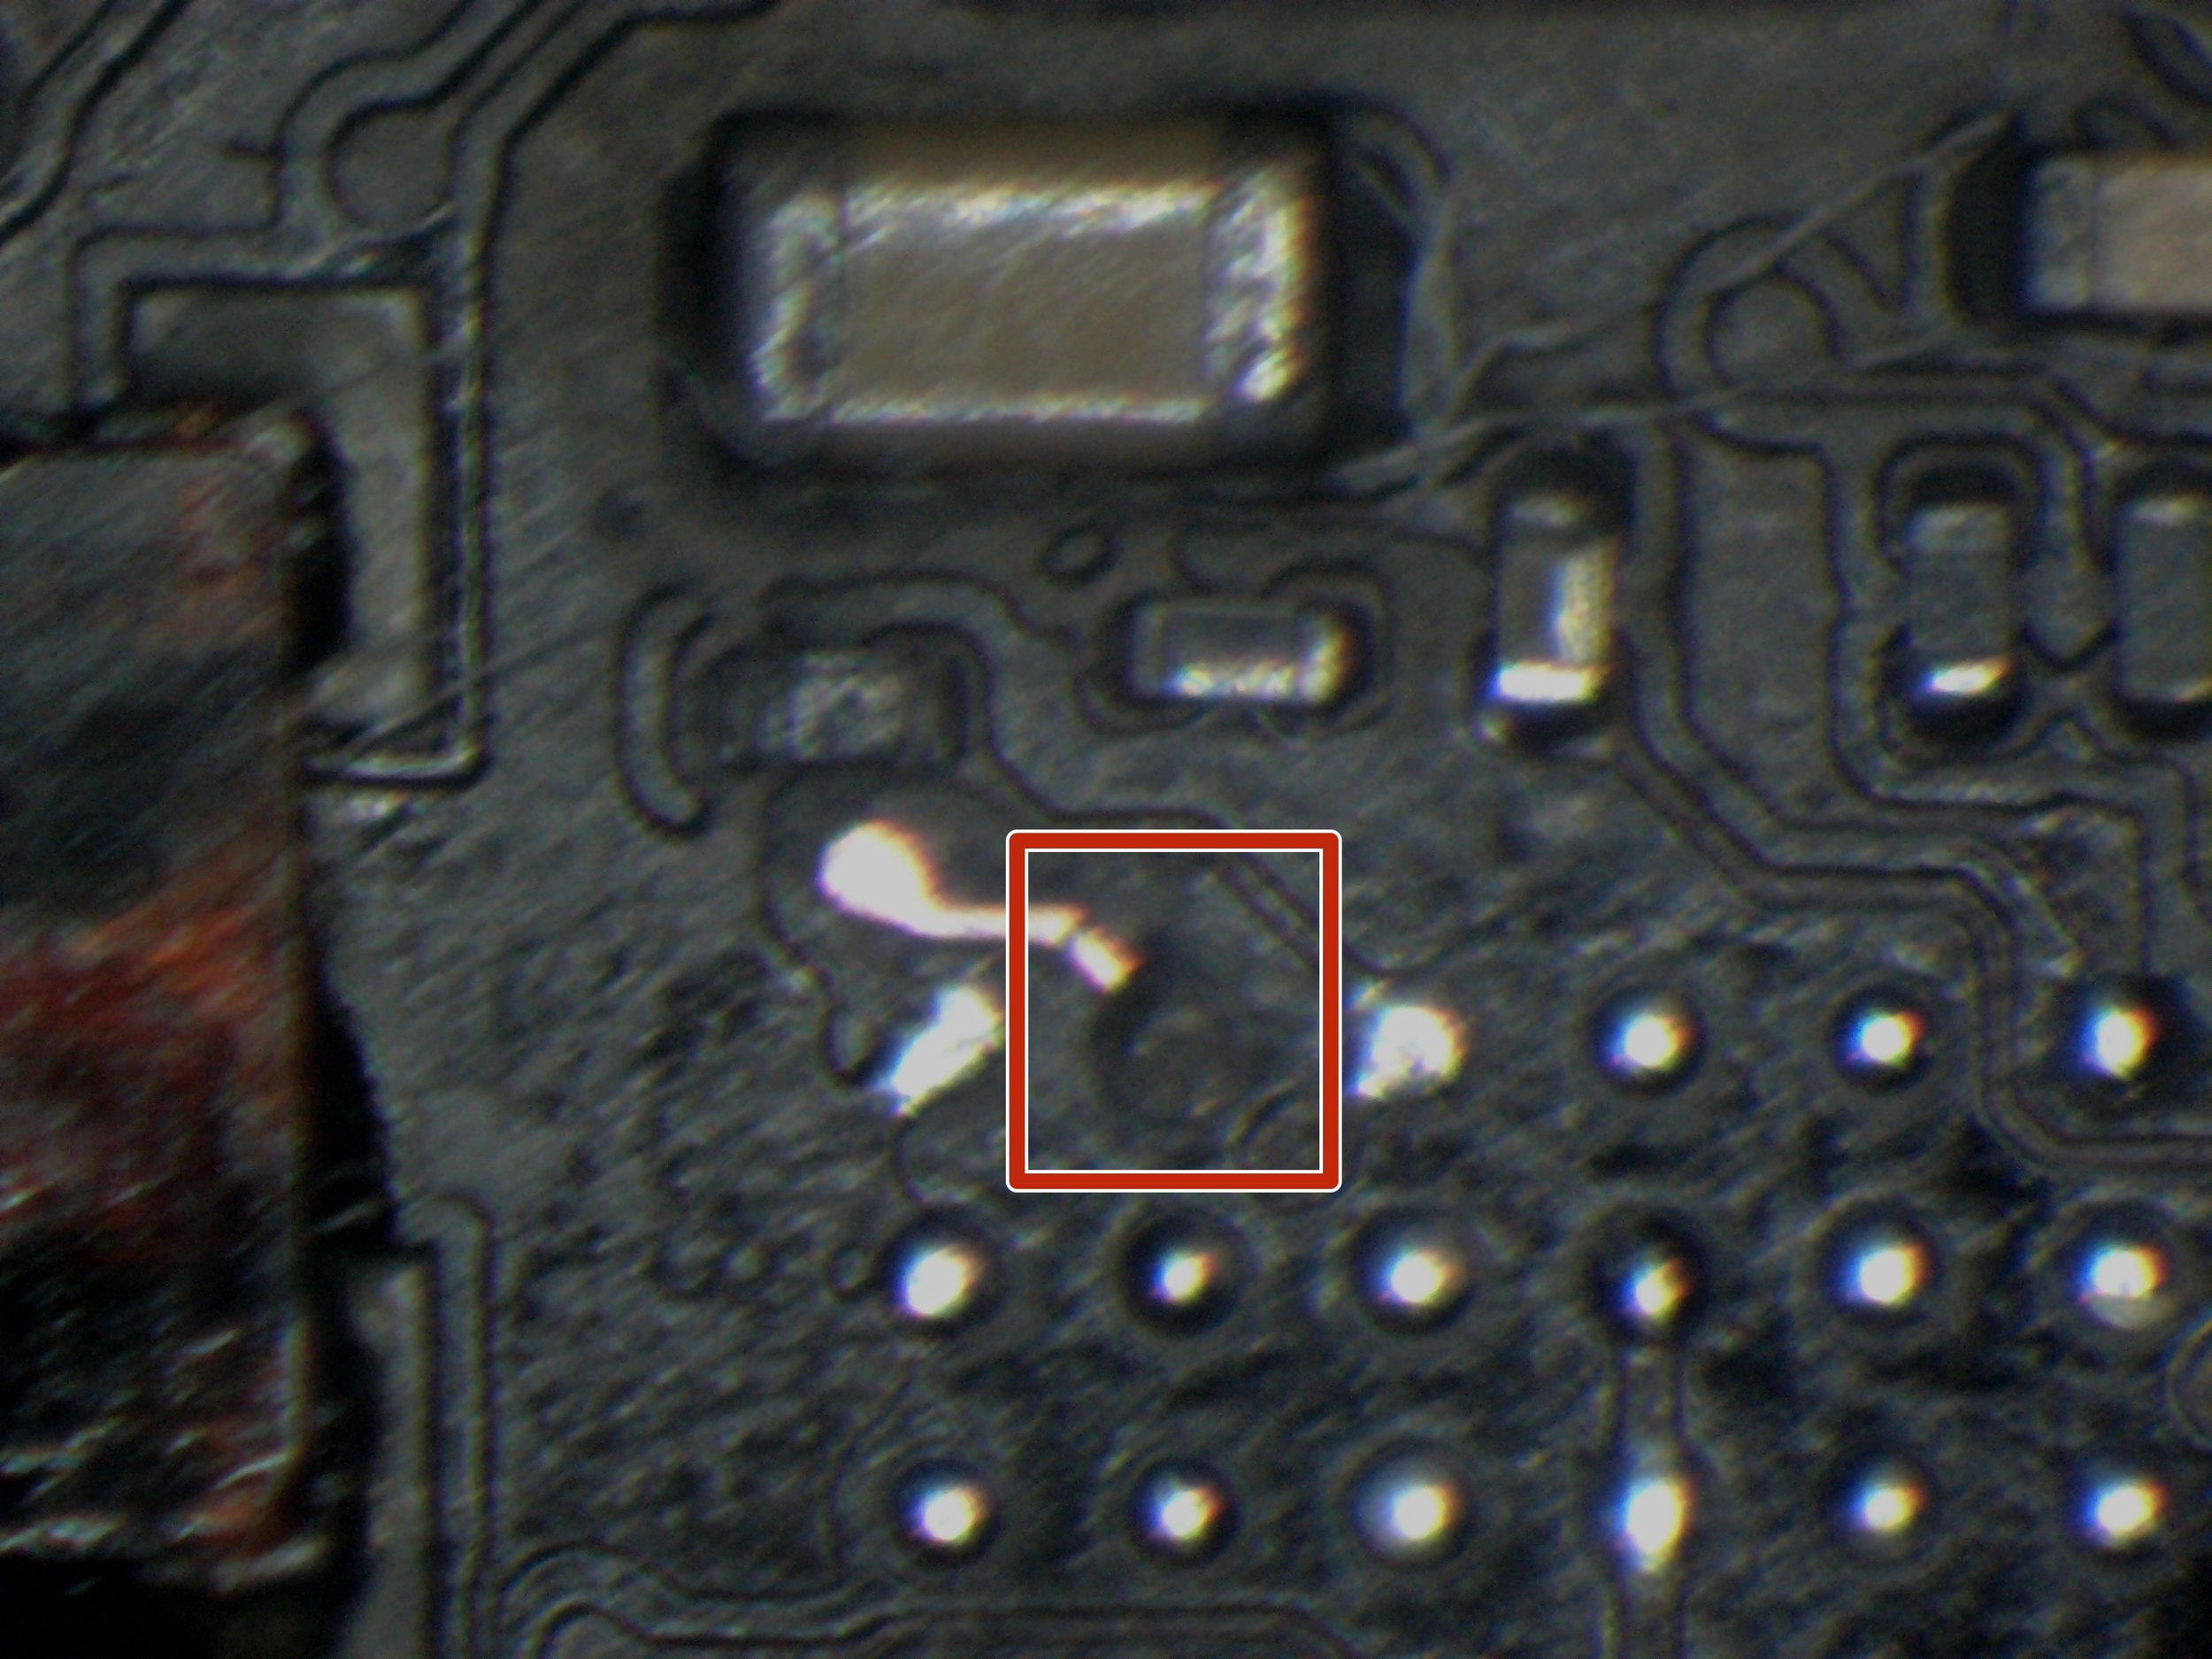 M1 pad missing and cracked trace